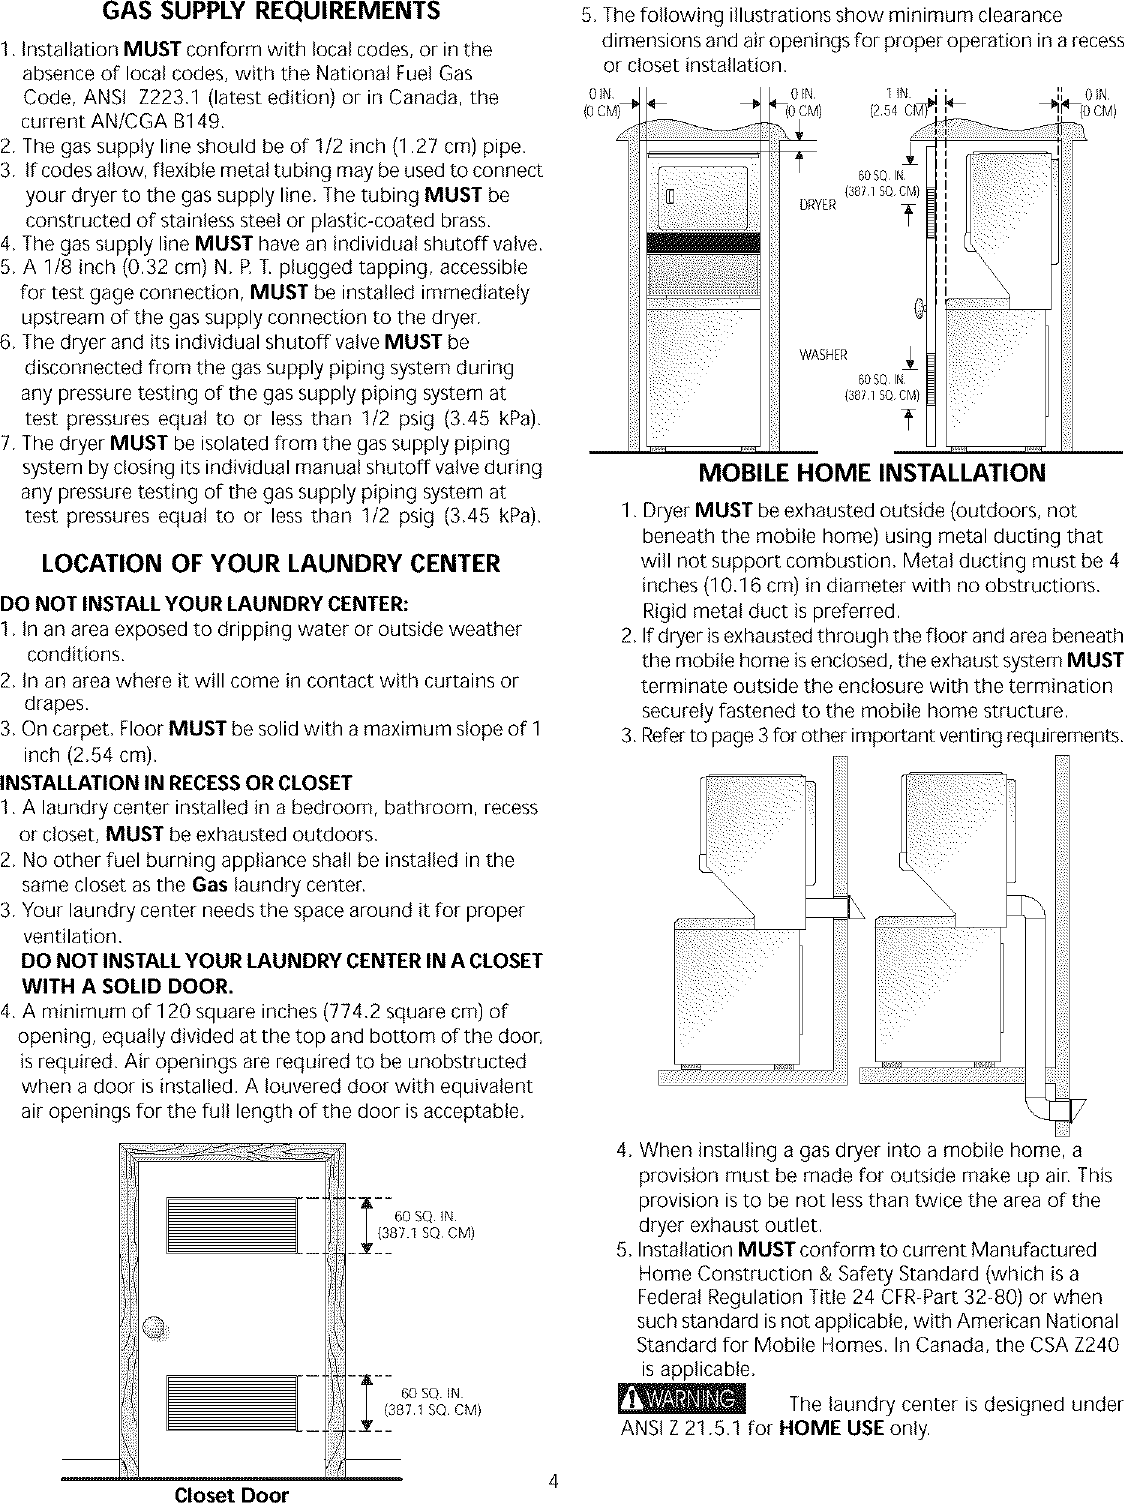 Page 4 of 8 - Frigidaire FEX831CS0 User Manual  LAUNDRY CENTER - Manuals And Guides L0304056